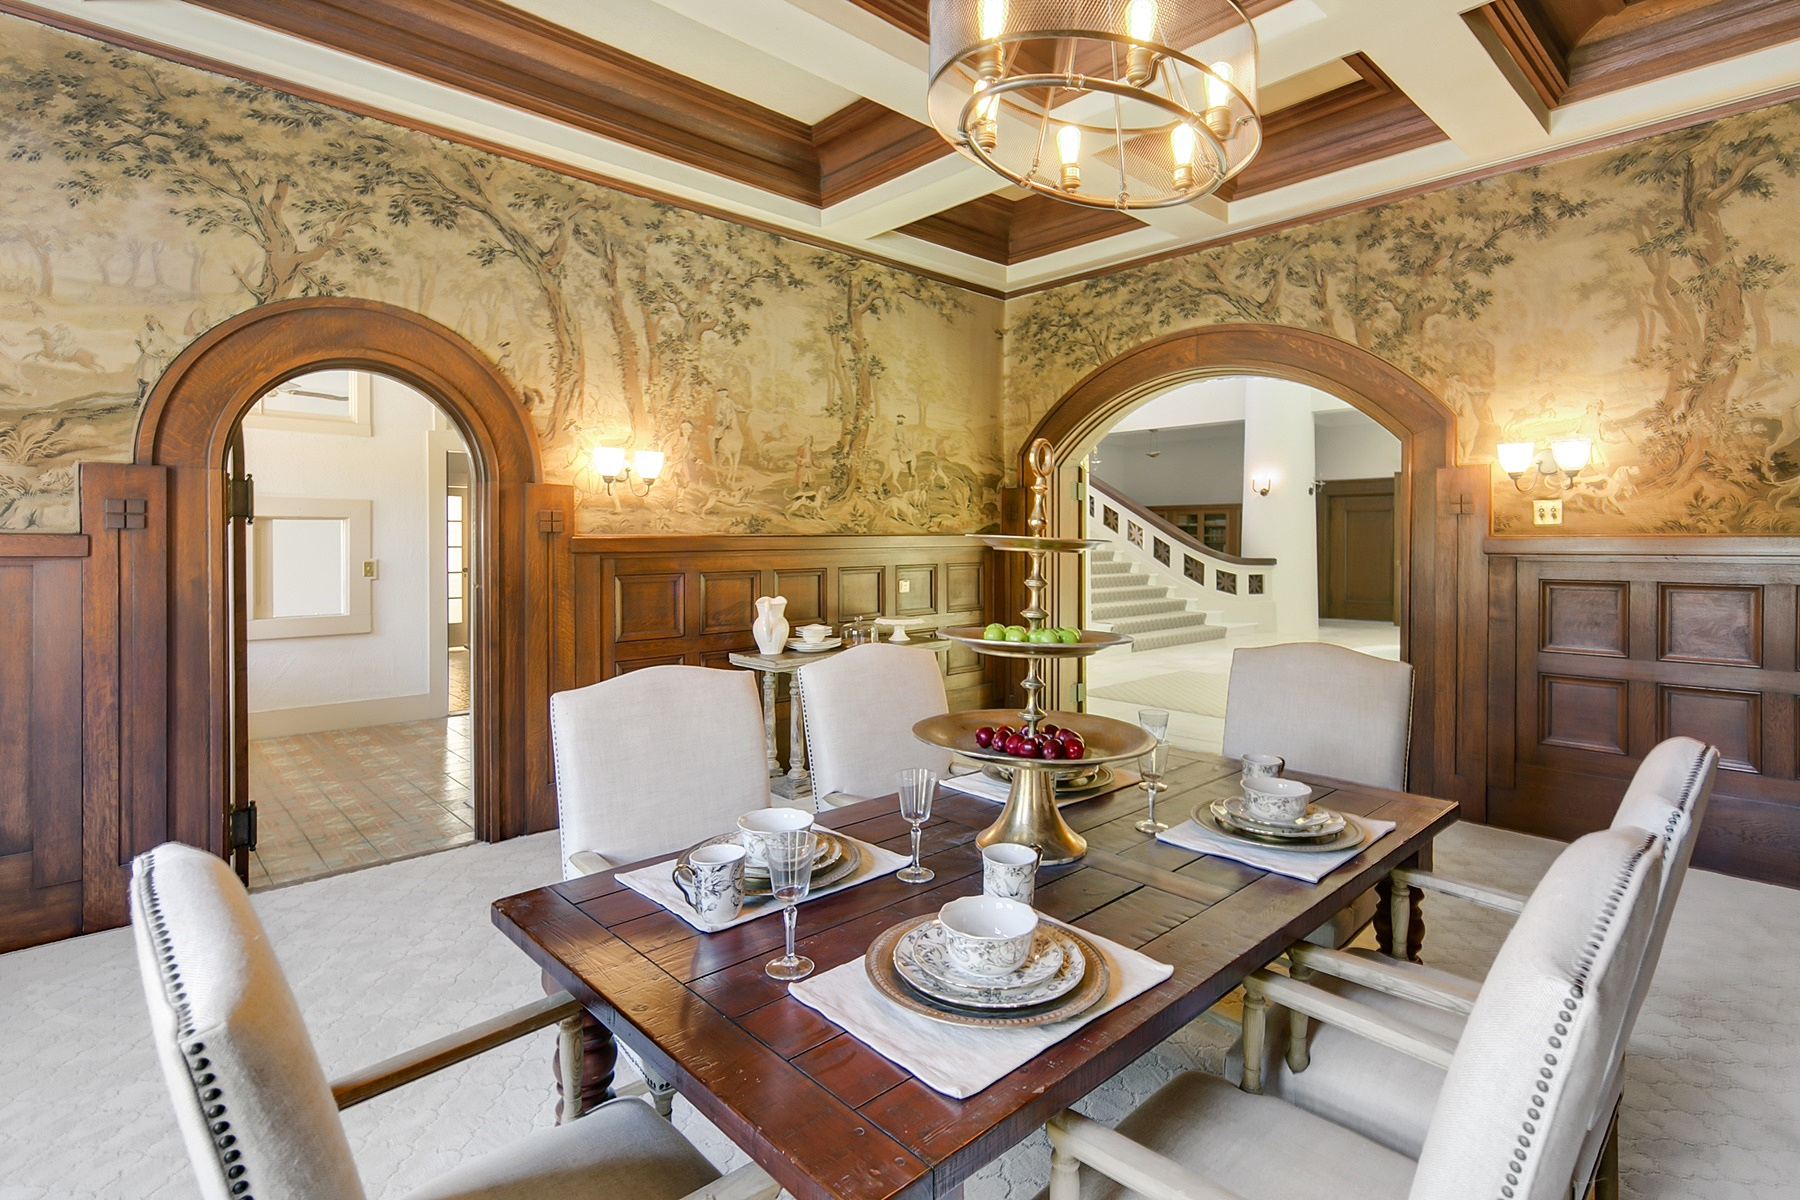 Additional photo for property listing at Spring Mansion Property Located In The Berkeley Hills 1960 San Antonio Street Berkeley, California 94707 United States